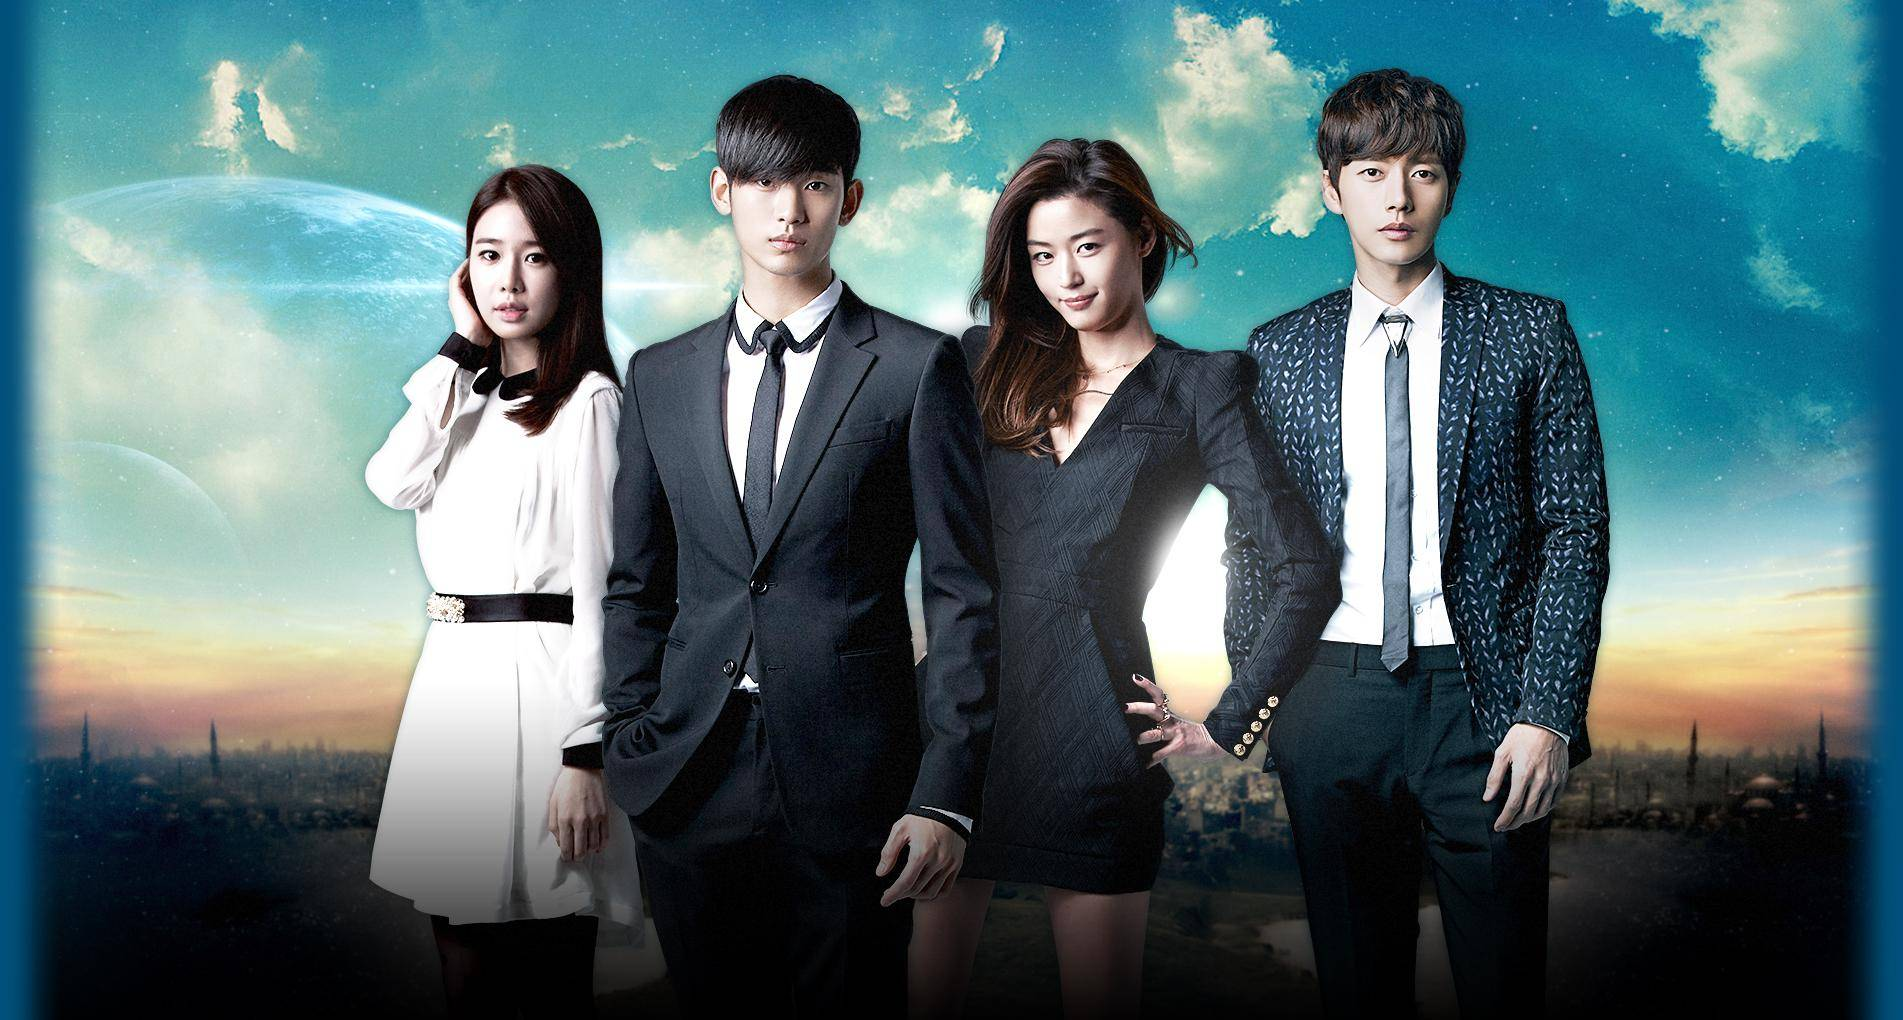 [Photos] Added new posters and images for the Korean drama ...